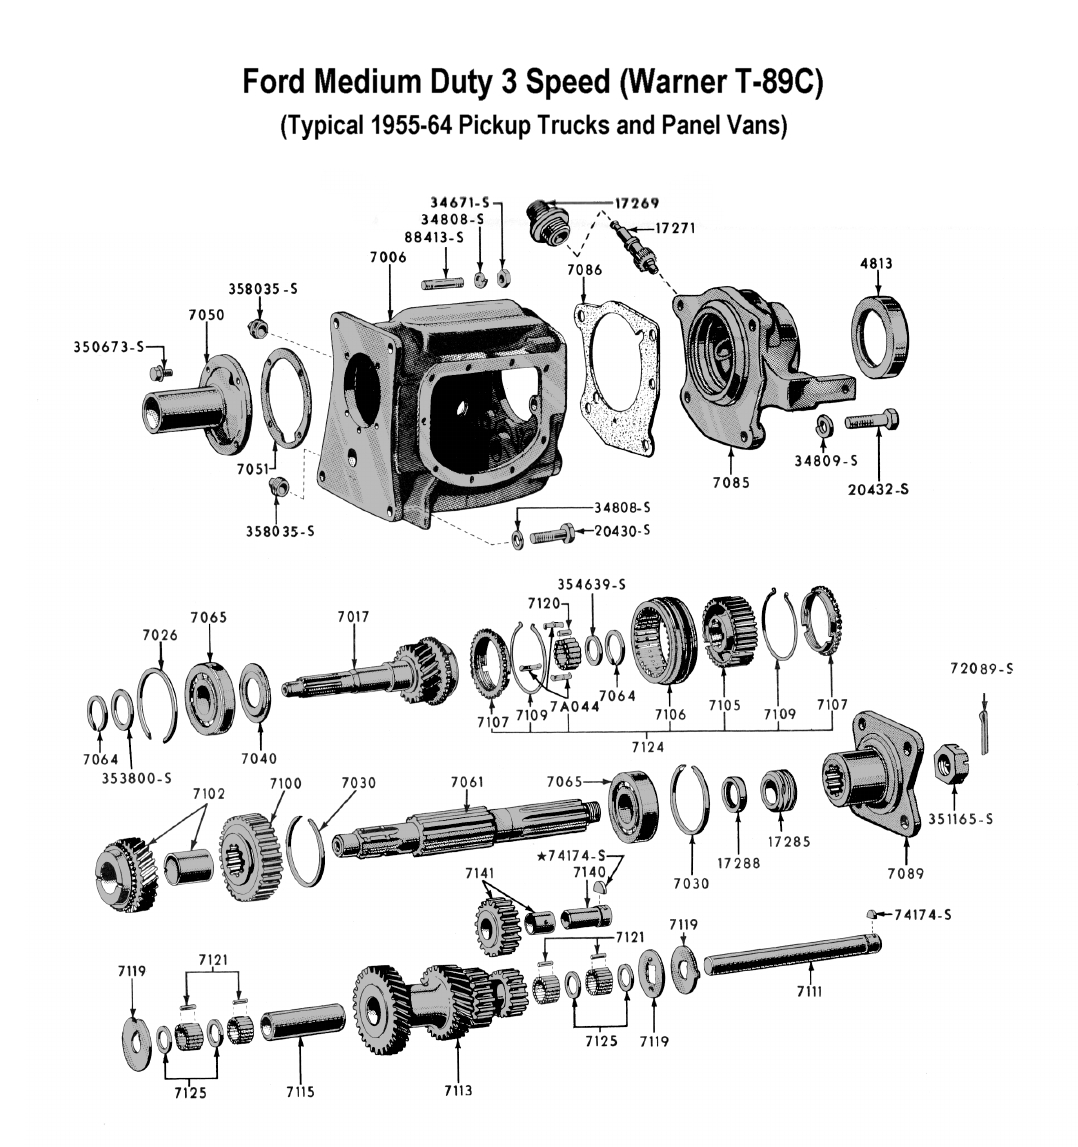 Flathead Parts Drawings Transmissions Starting Circuit Diagram For The 1955 Mercury All Models Three Speed Trans Medium Duty T 89 To 64